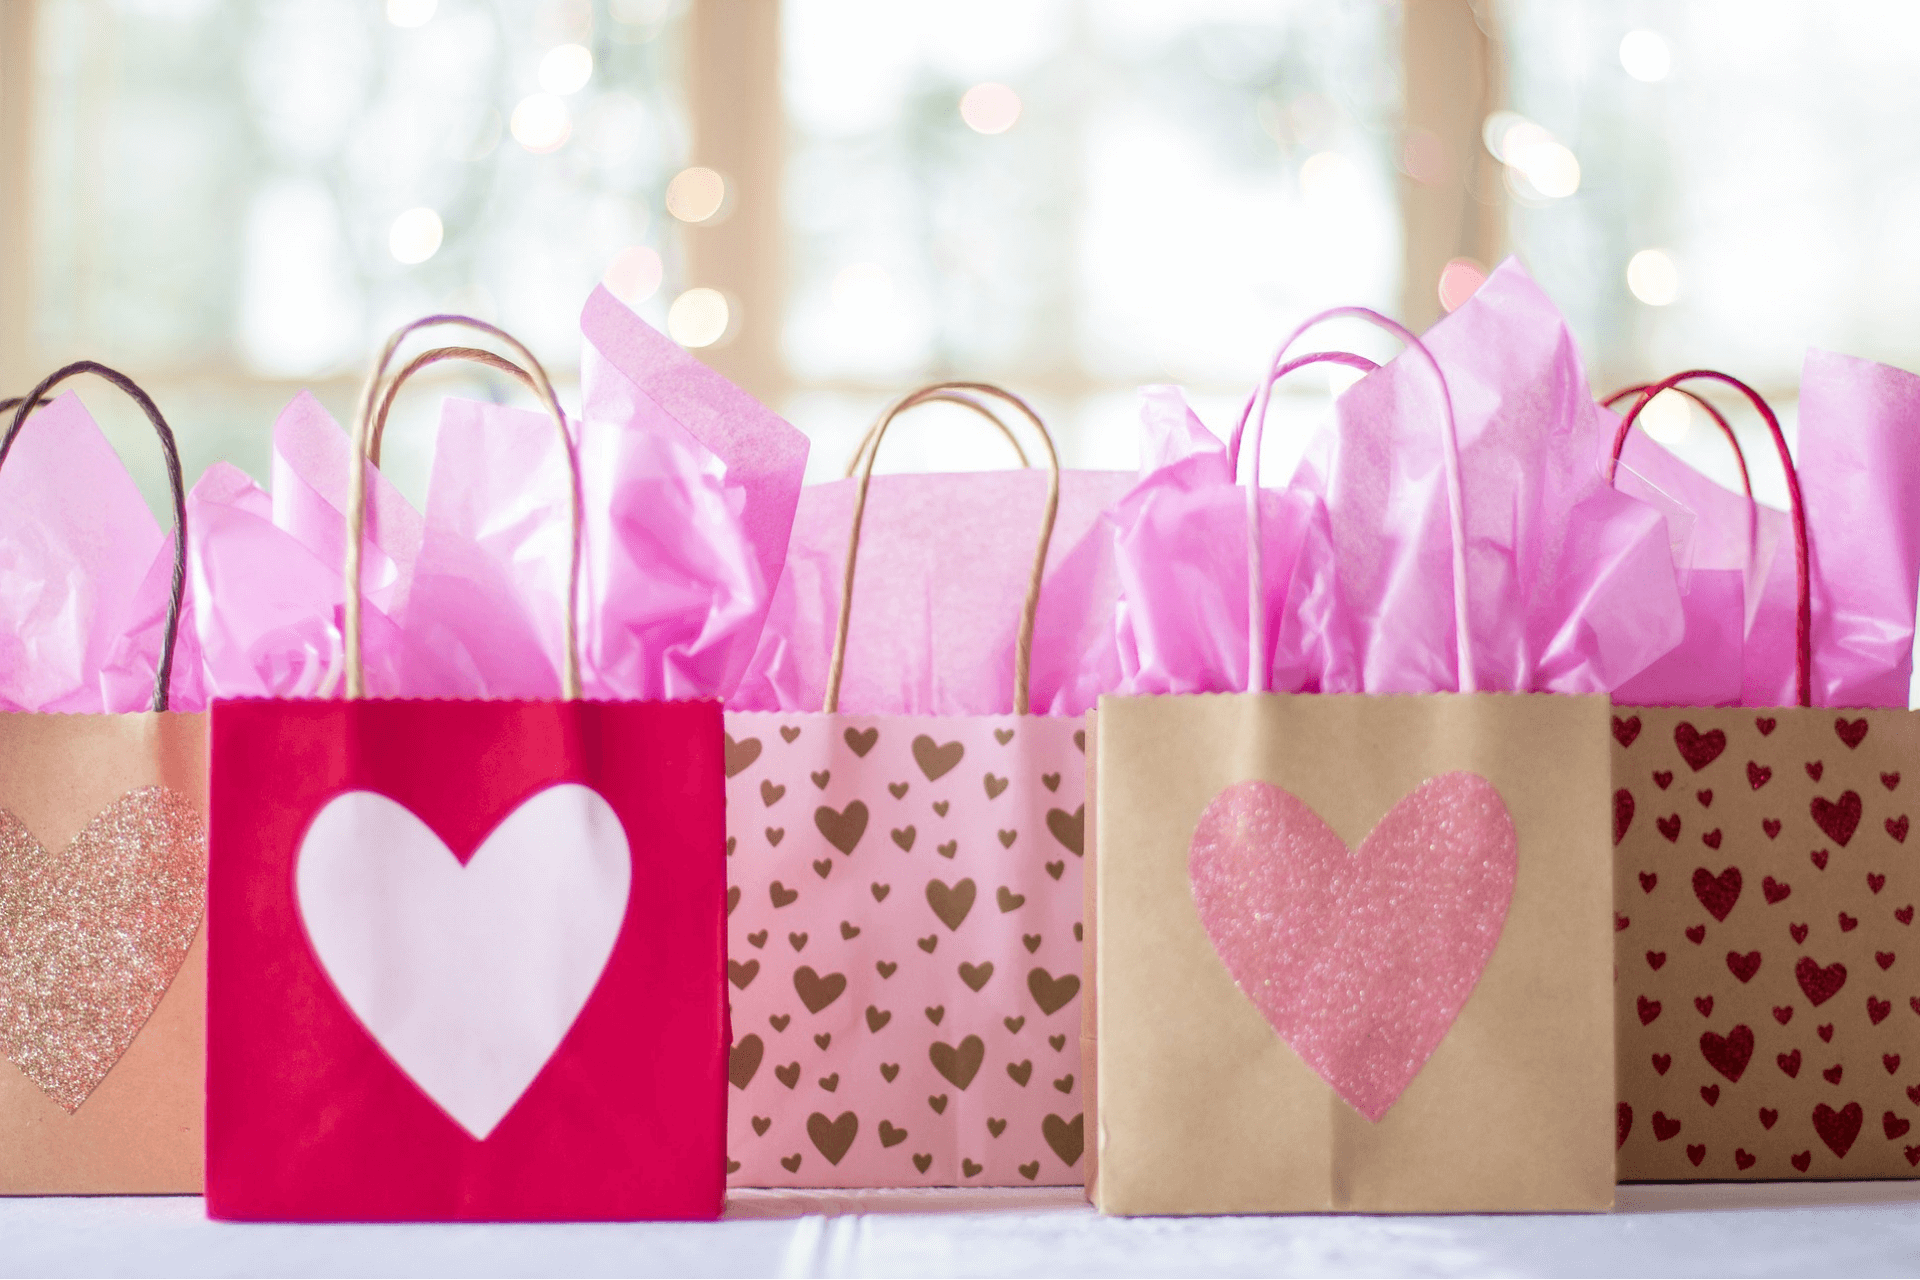 This image shows gifts bags representing the importance of marketing for matching gift fundraising